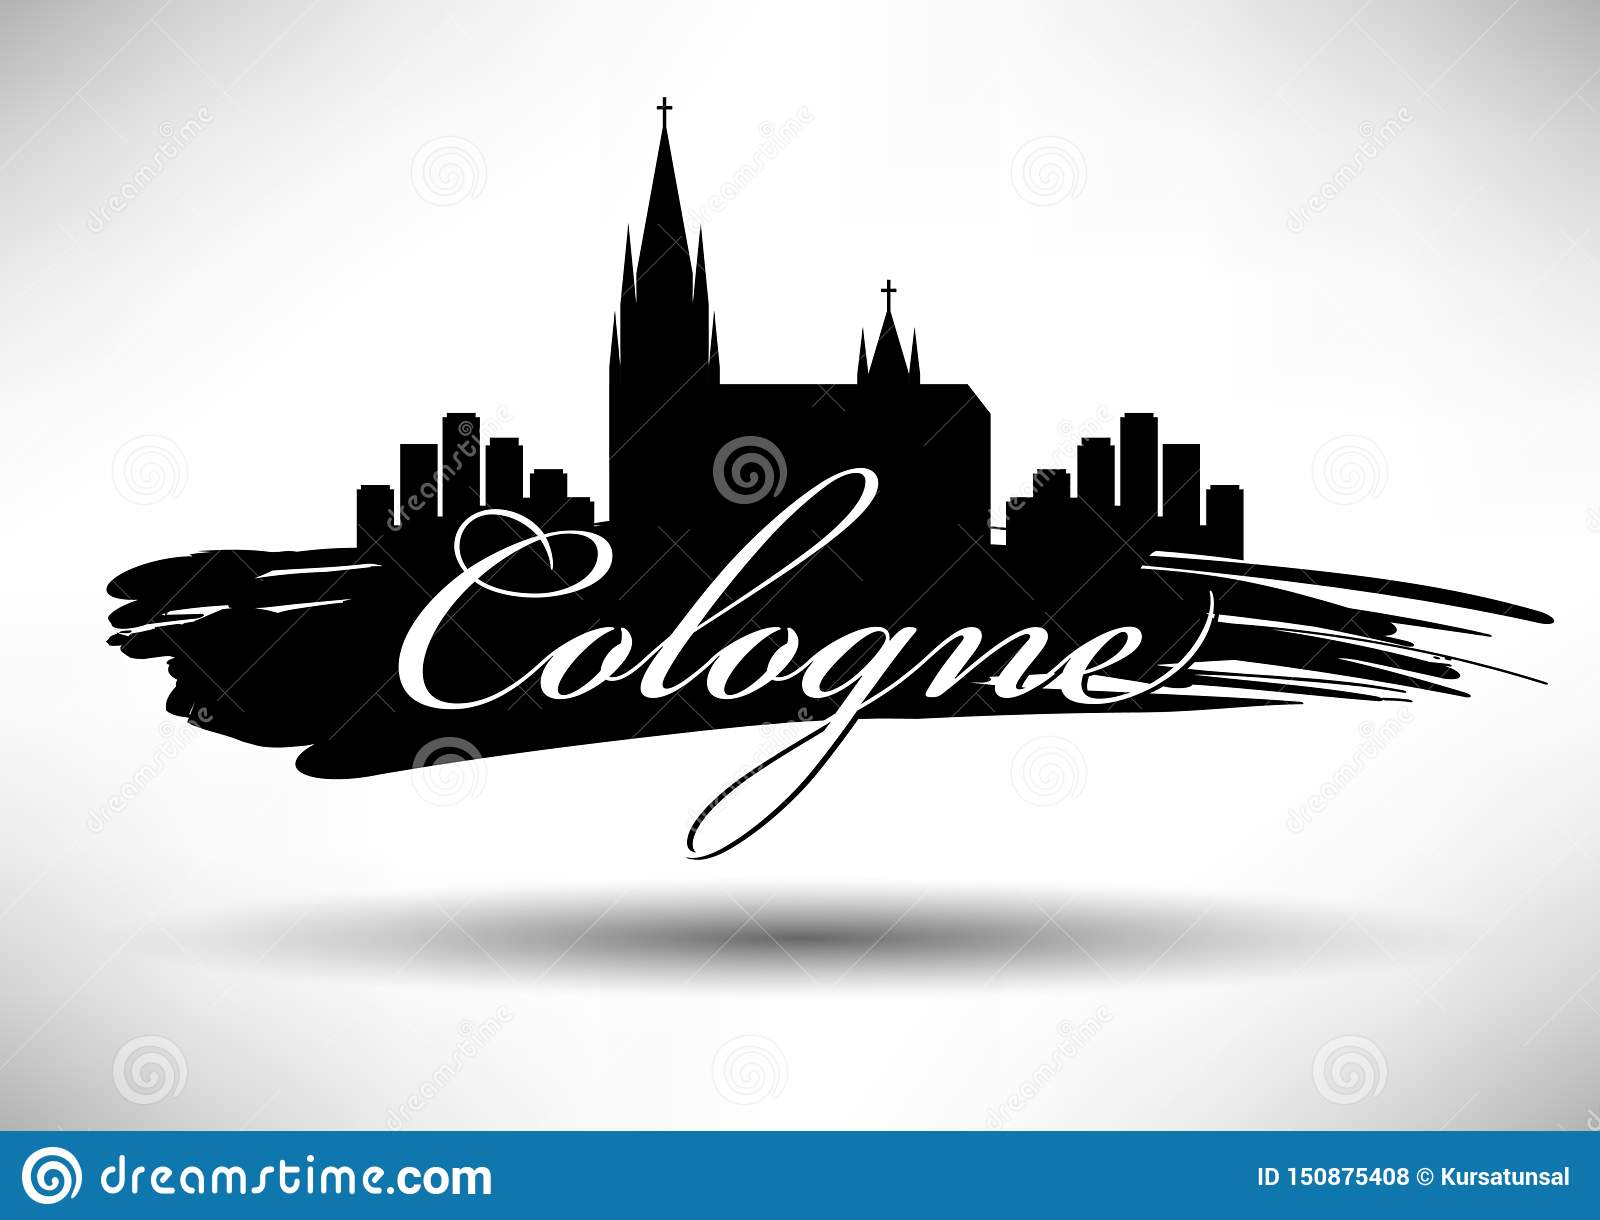 Cologne Skyline with Typographic Design